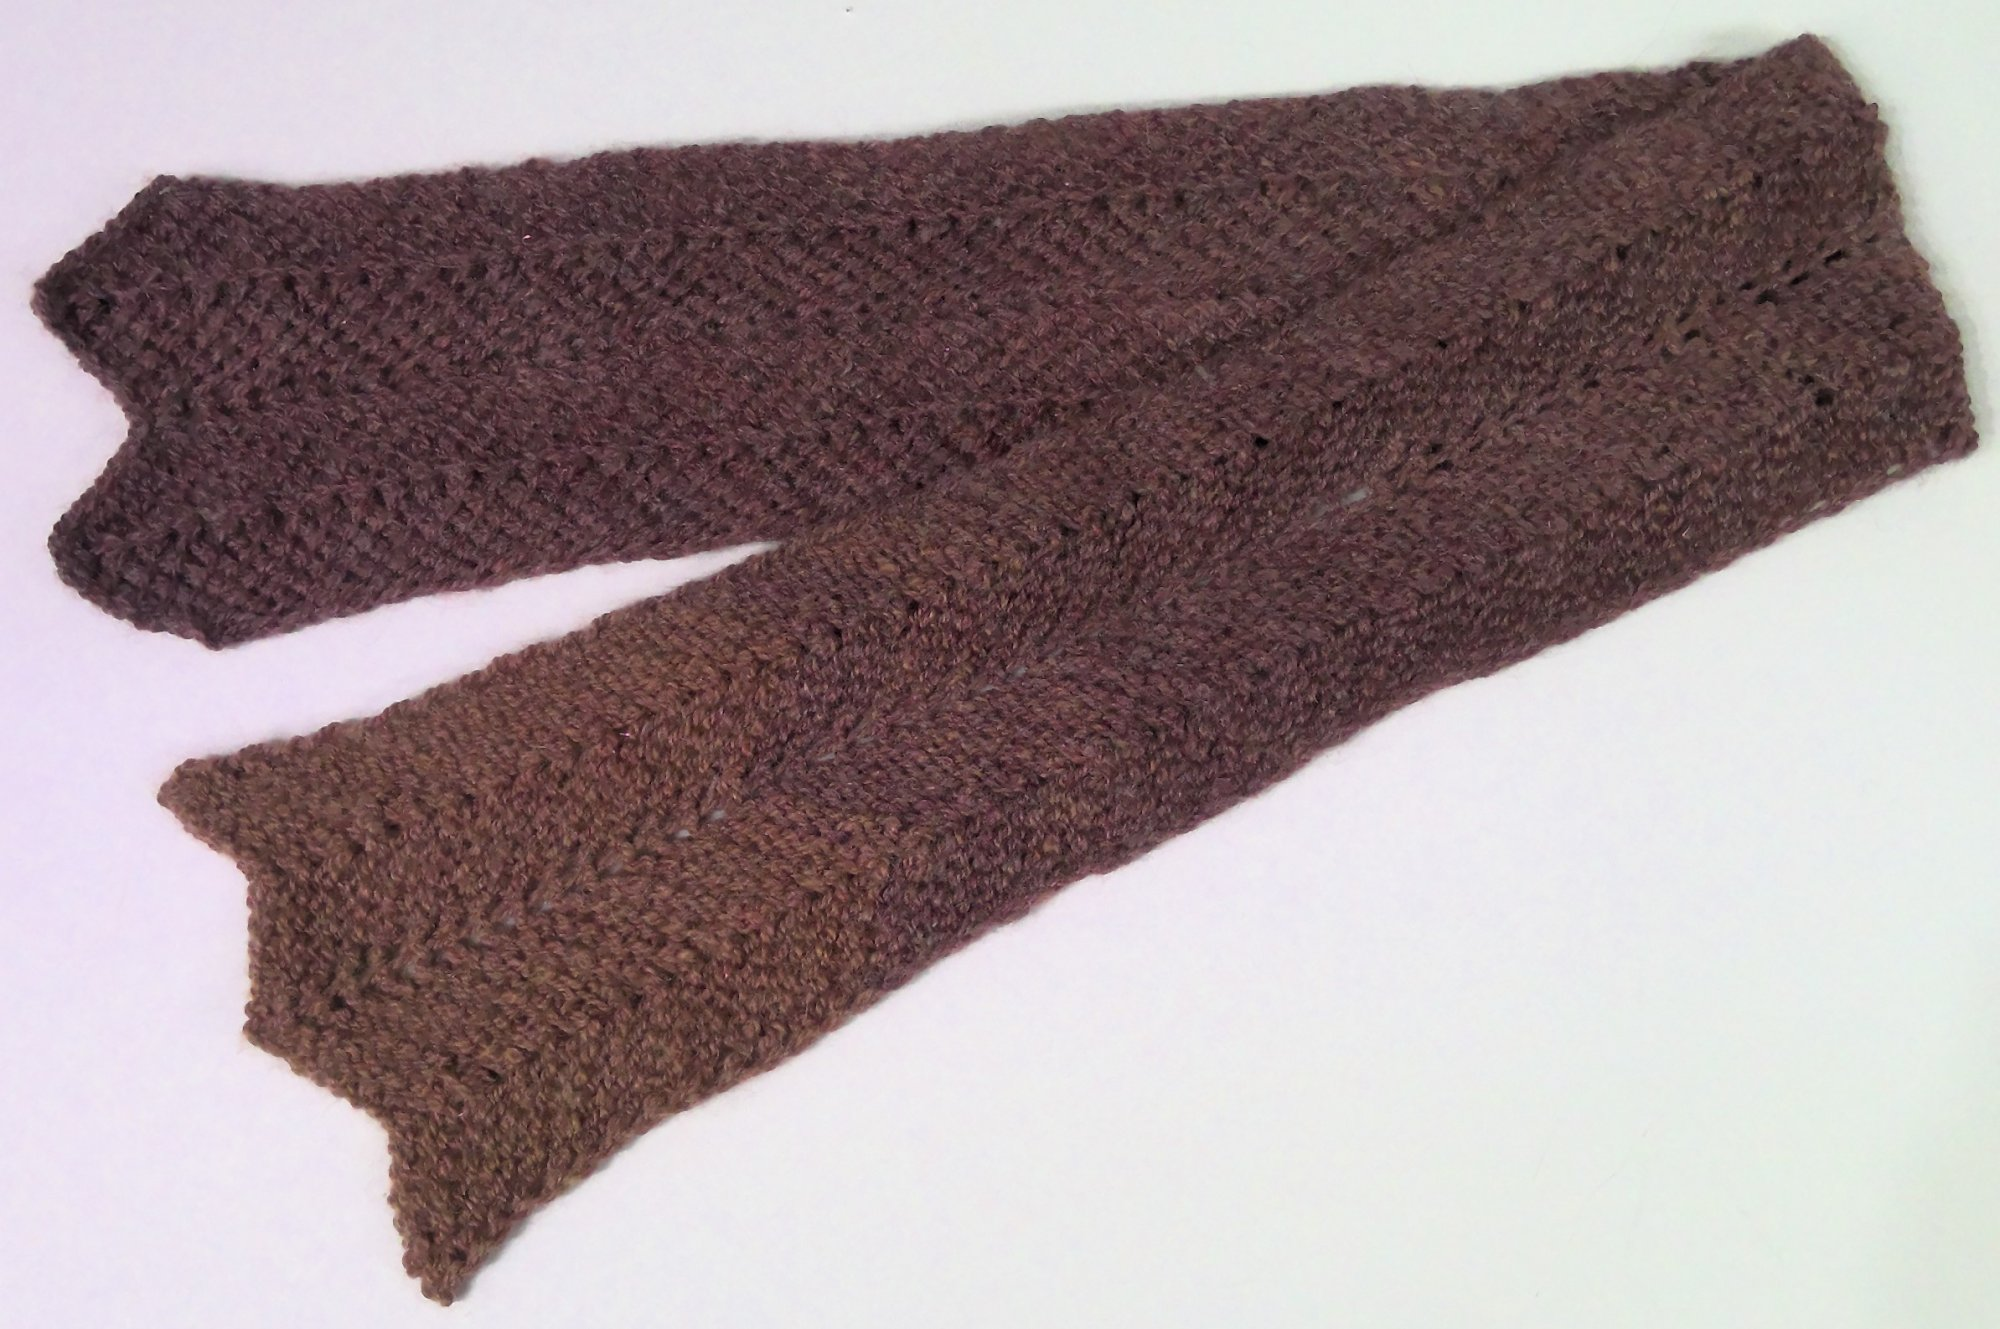 Scarf Small - Handwoven